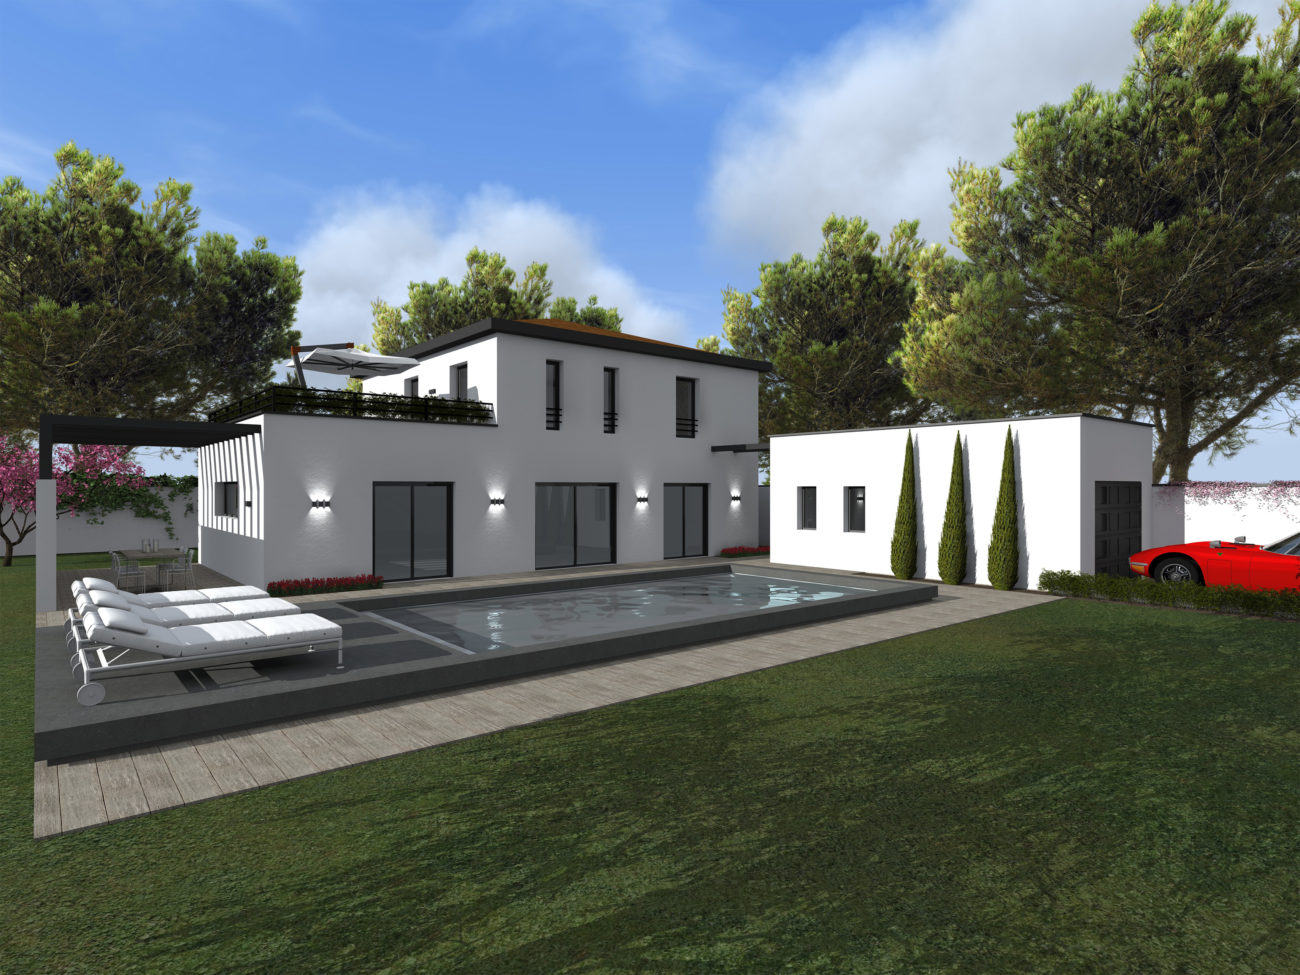 Projets immobiliers archive maisons elytis lyon ouest for Garage mure st genis les ollieres